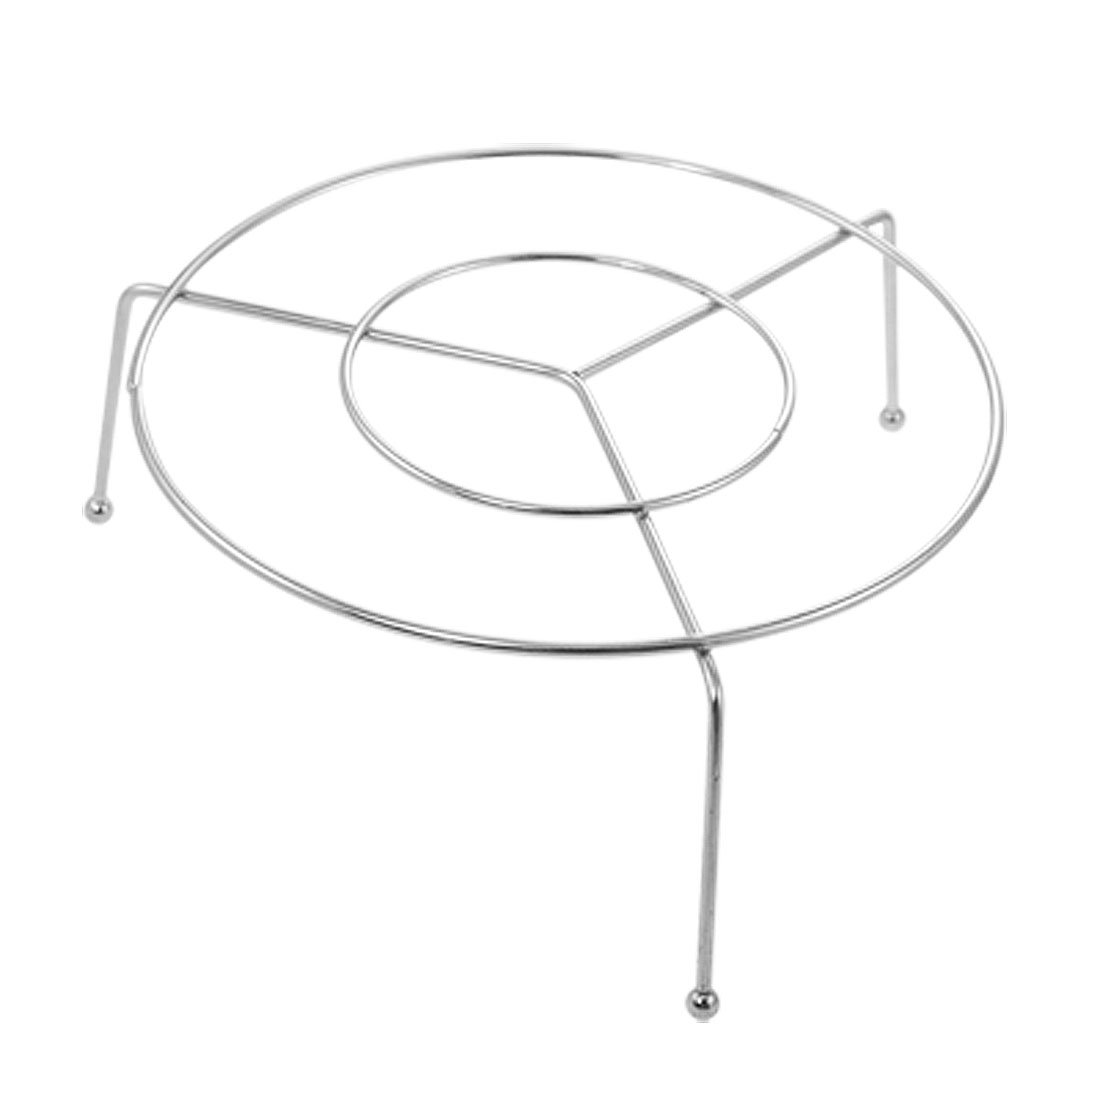 Wholesale 5* Amico Stainless Steel Wire Steamer Rack Food Steaming Stand 13.5cm 316l stainless steel wire soft diameter 1mm length 5 meter